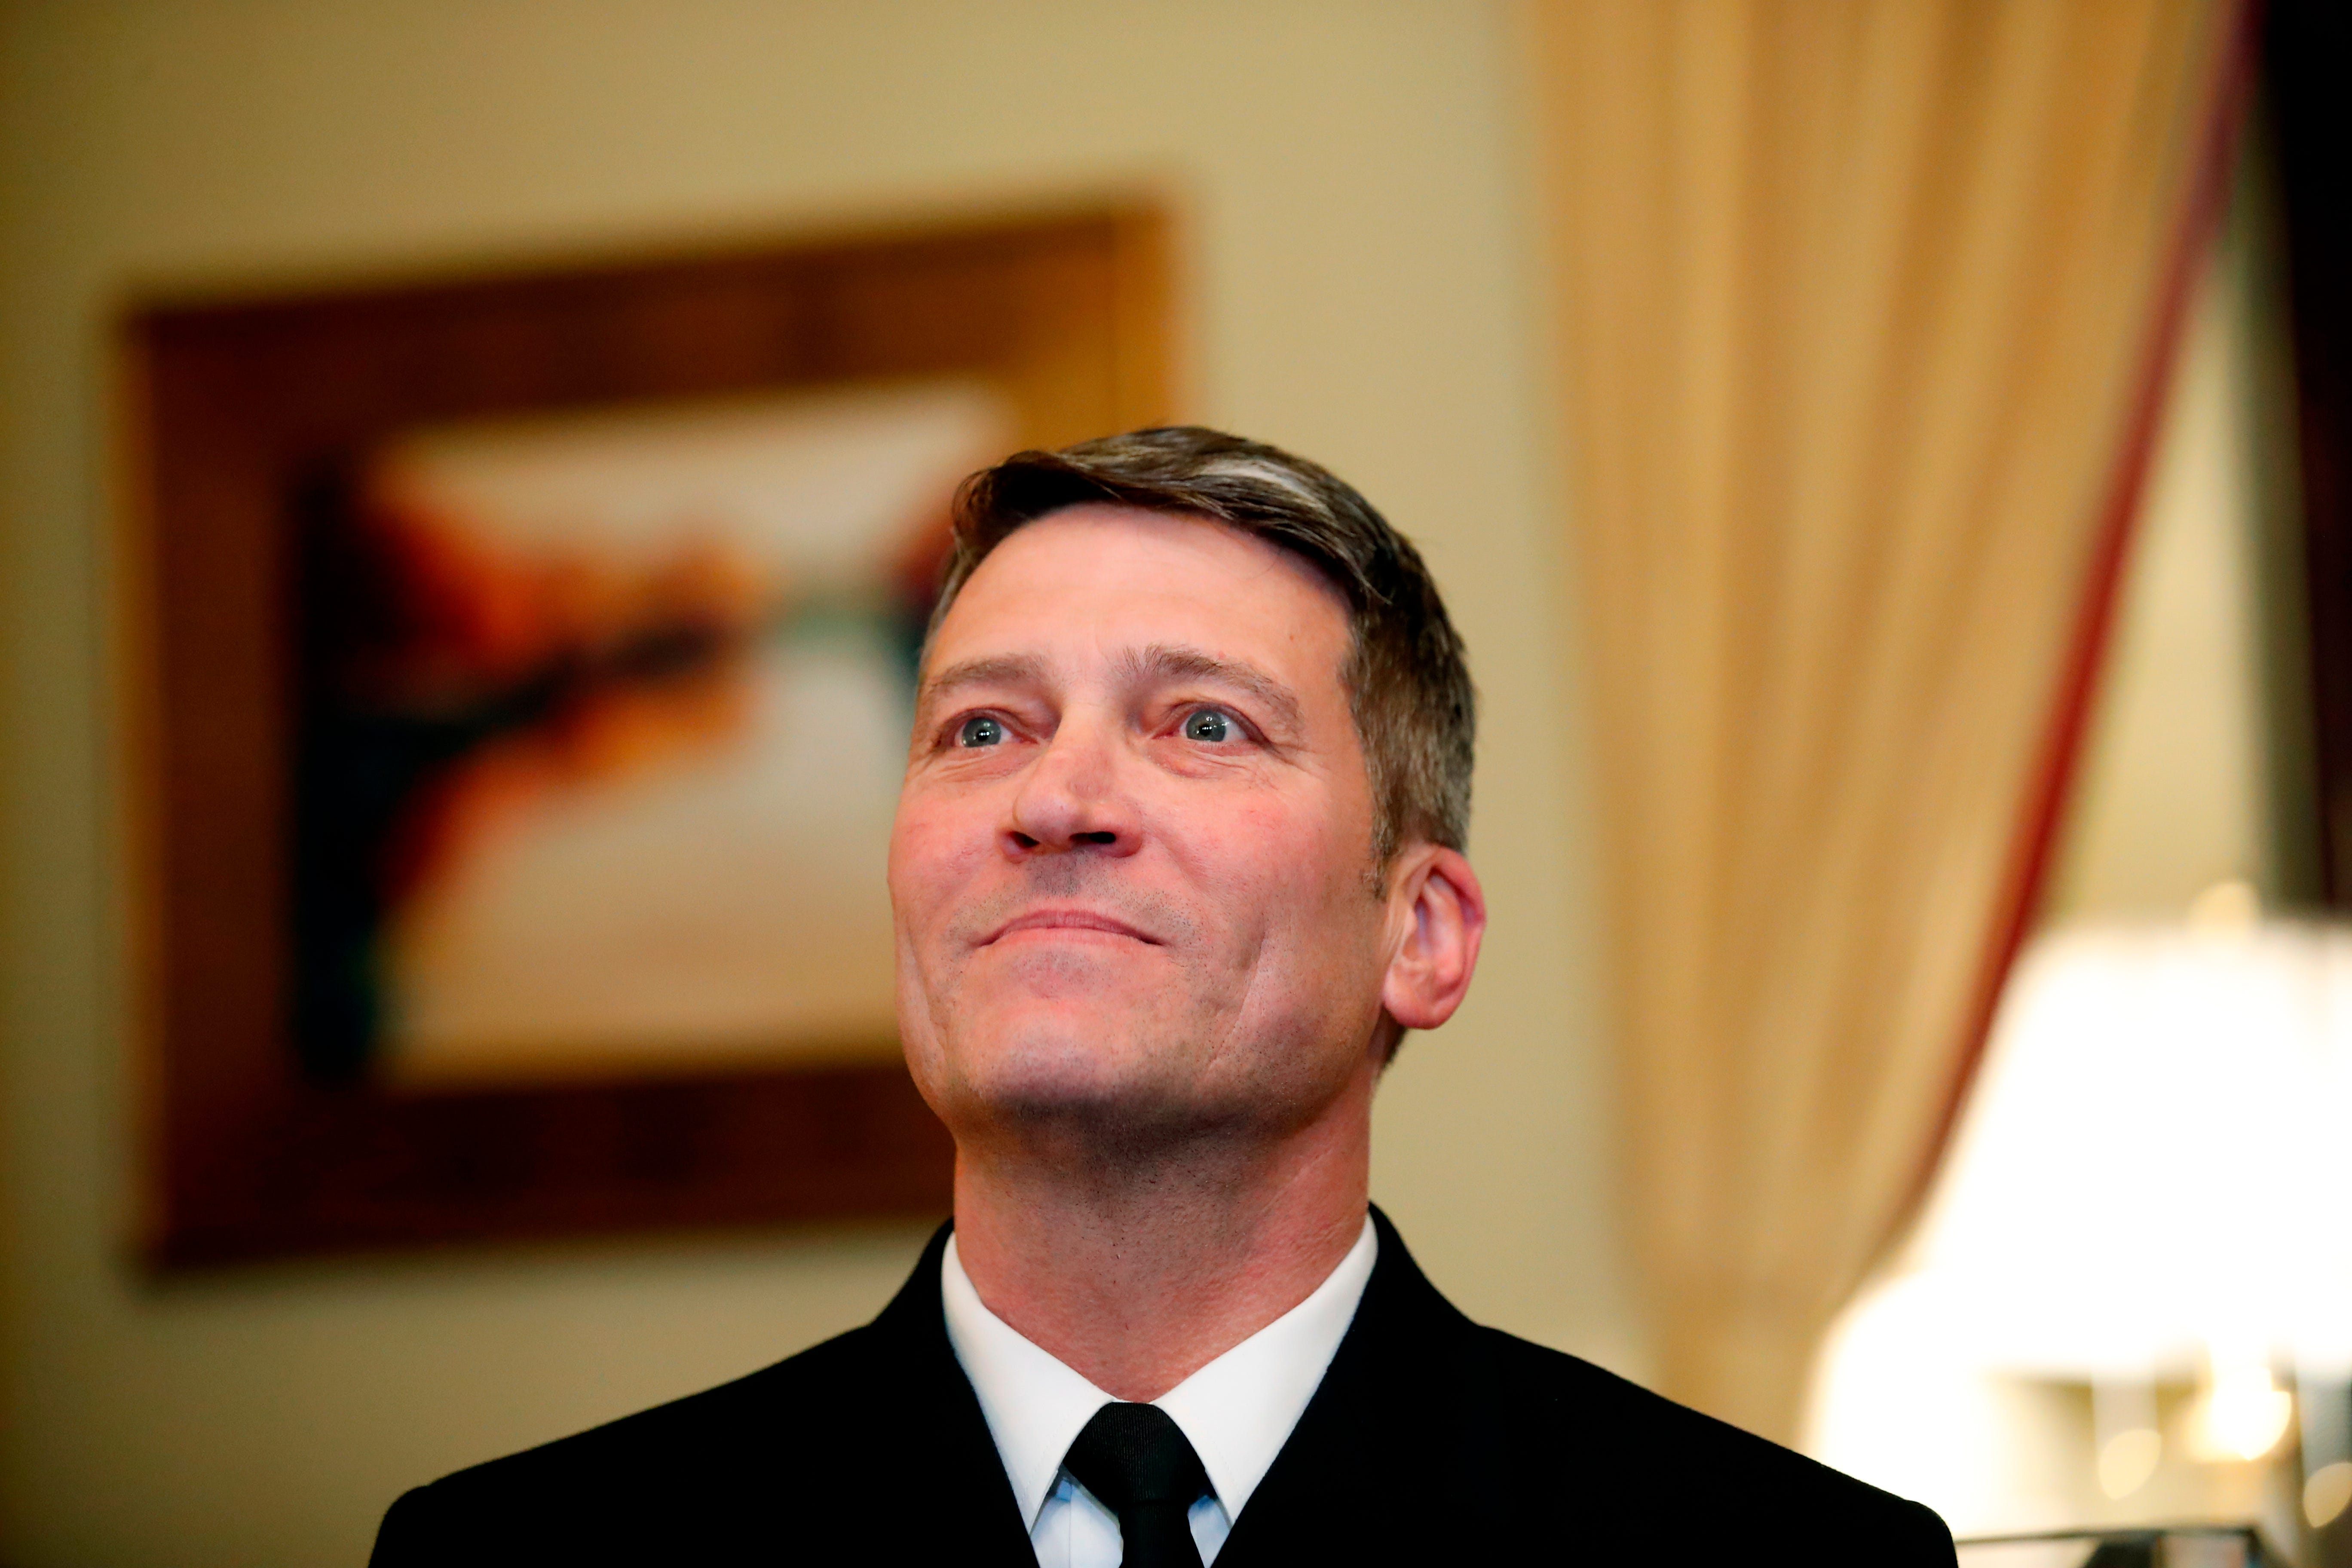 VA nominee Ronny Jackson in jeopardy as Senate delays hearing amid 'serious allegations'